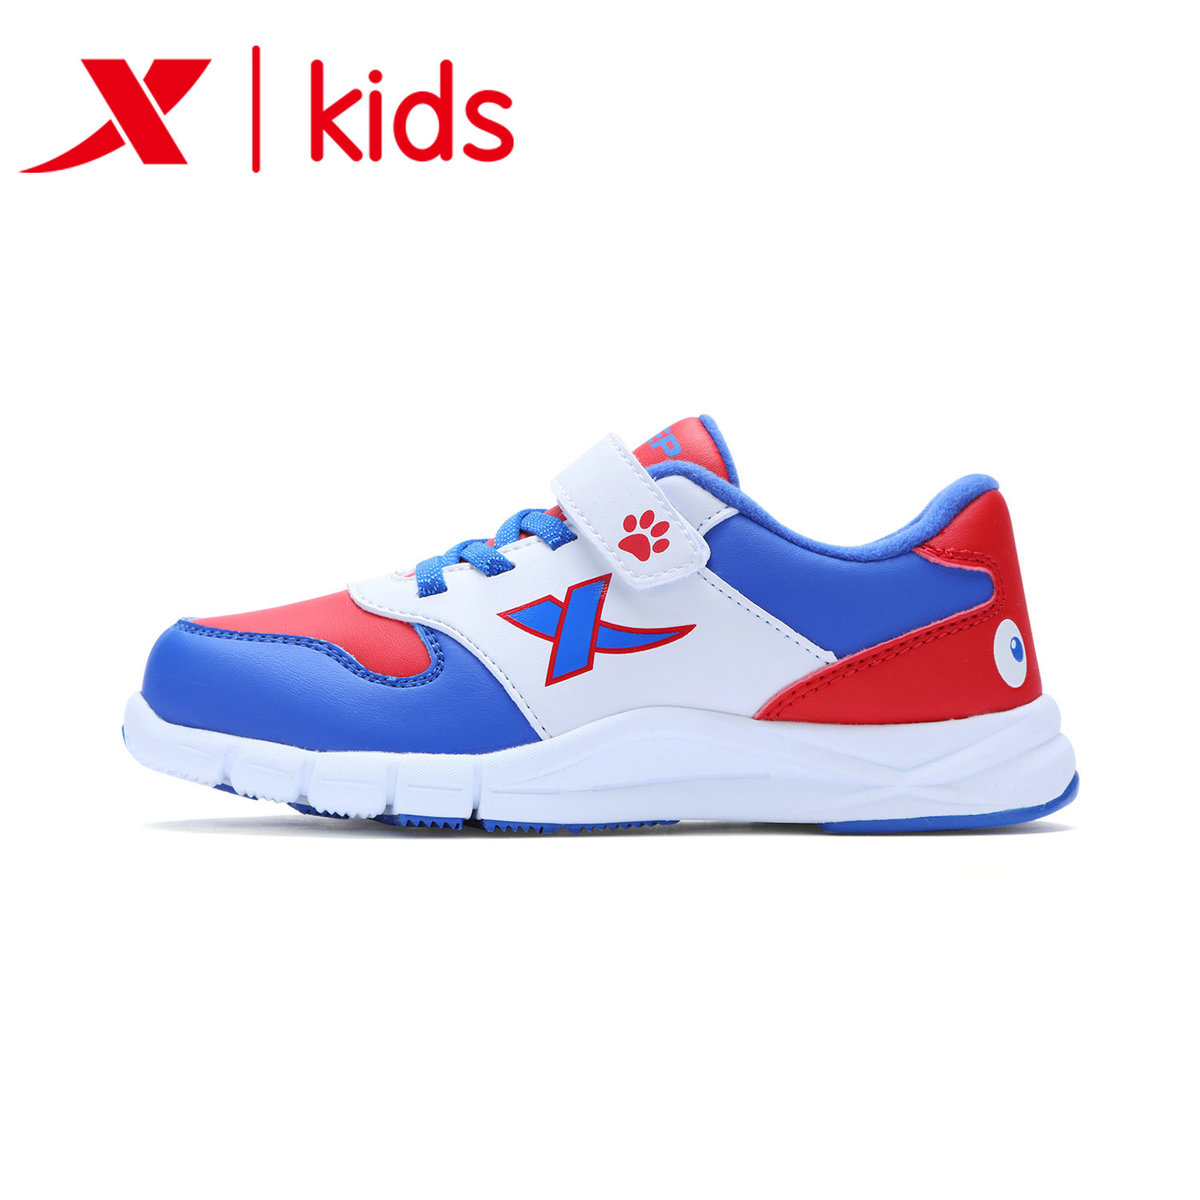 XTEP Children's Children Healthy Shoe Fall 2017 Autumn New Pattern Male Girl Fashion Leisure Time Baby Sneakers фен elchim 3900 healthy ionic red 03073 07